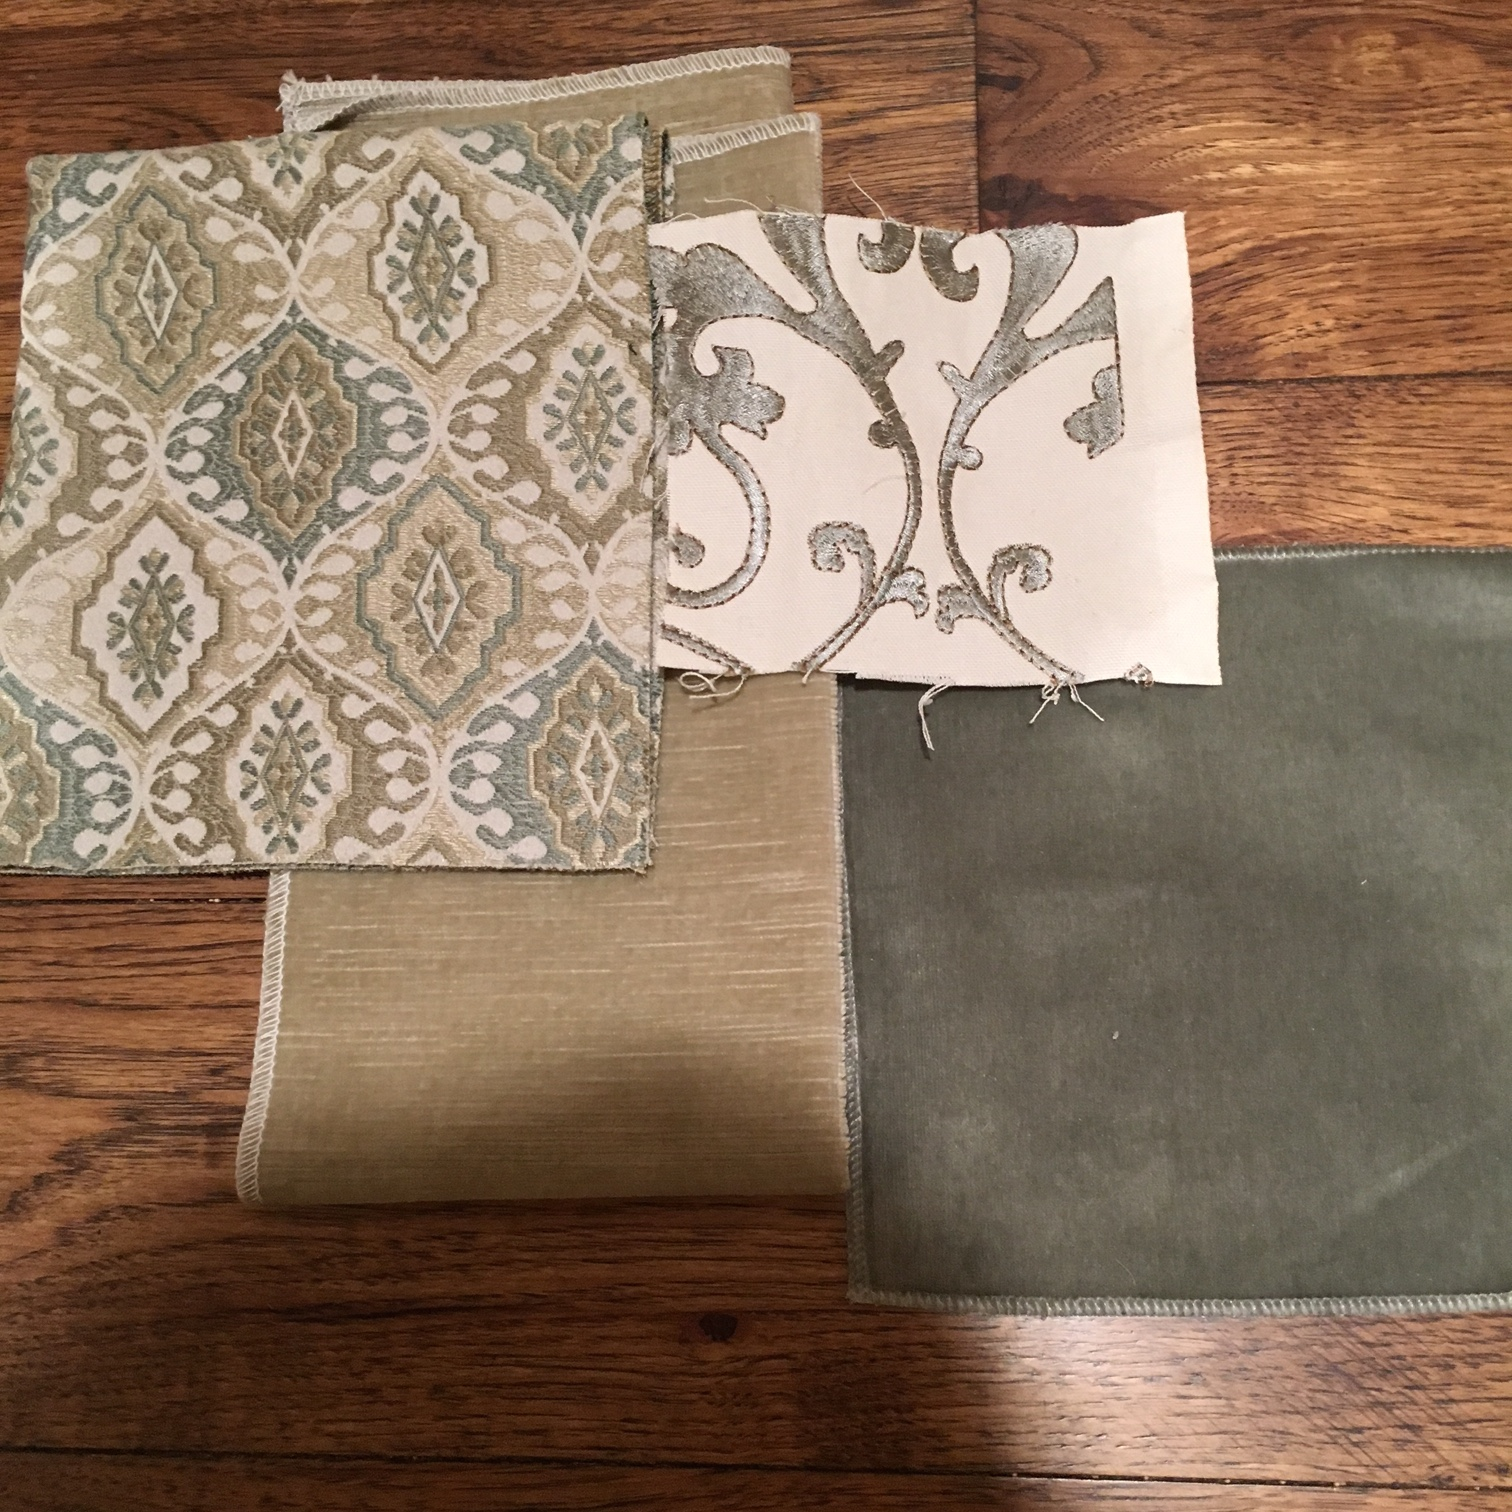 Hearth Room Fabrics - Patterned Chairs, Taupe Velvet Sofa , Embroidered fabric for Drapes/ Ottomans